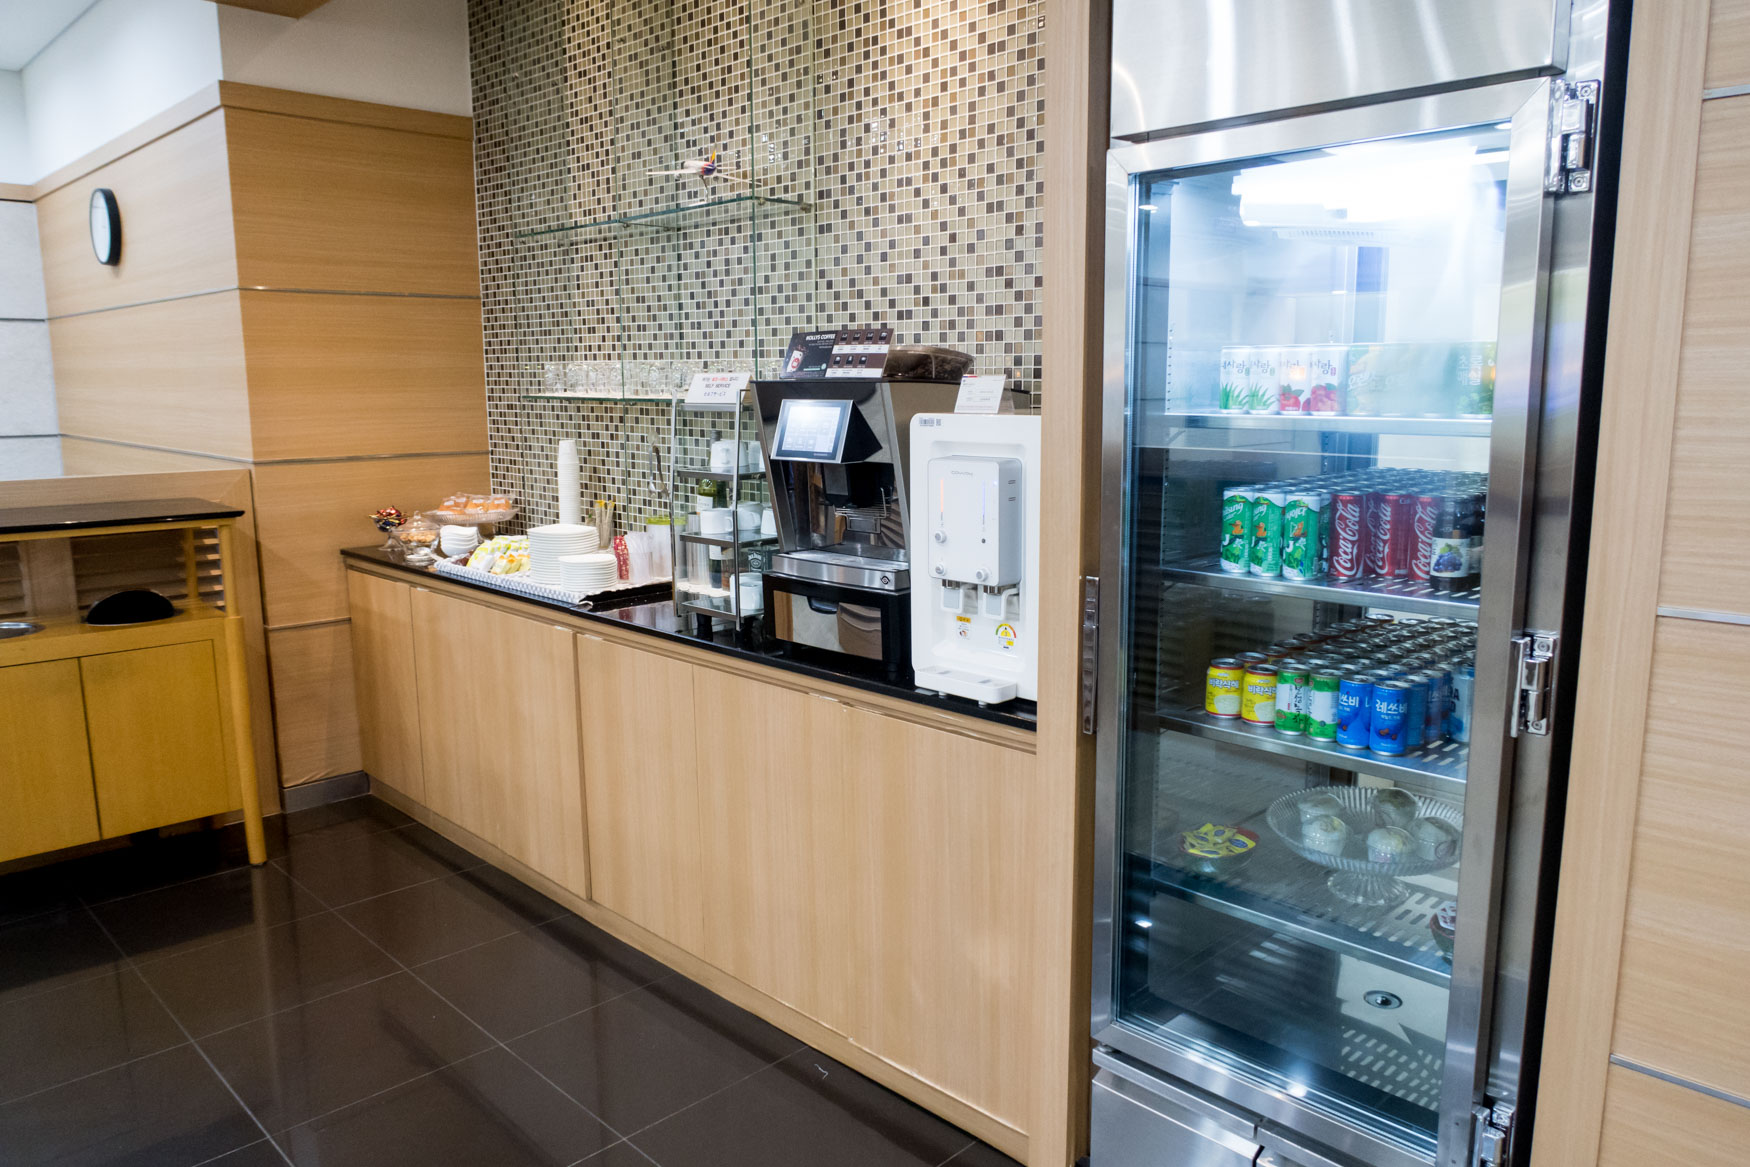 Asiana Lounge Busan Drinks and Snacks Corner